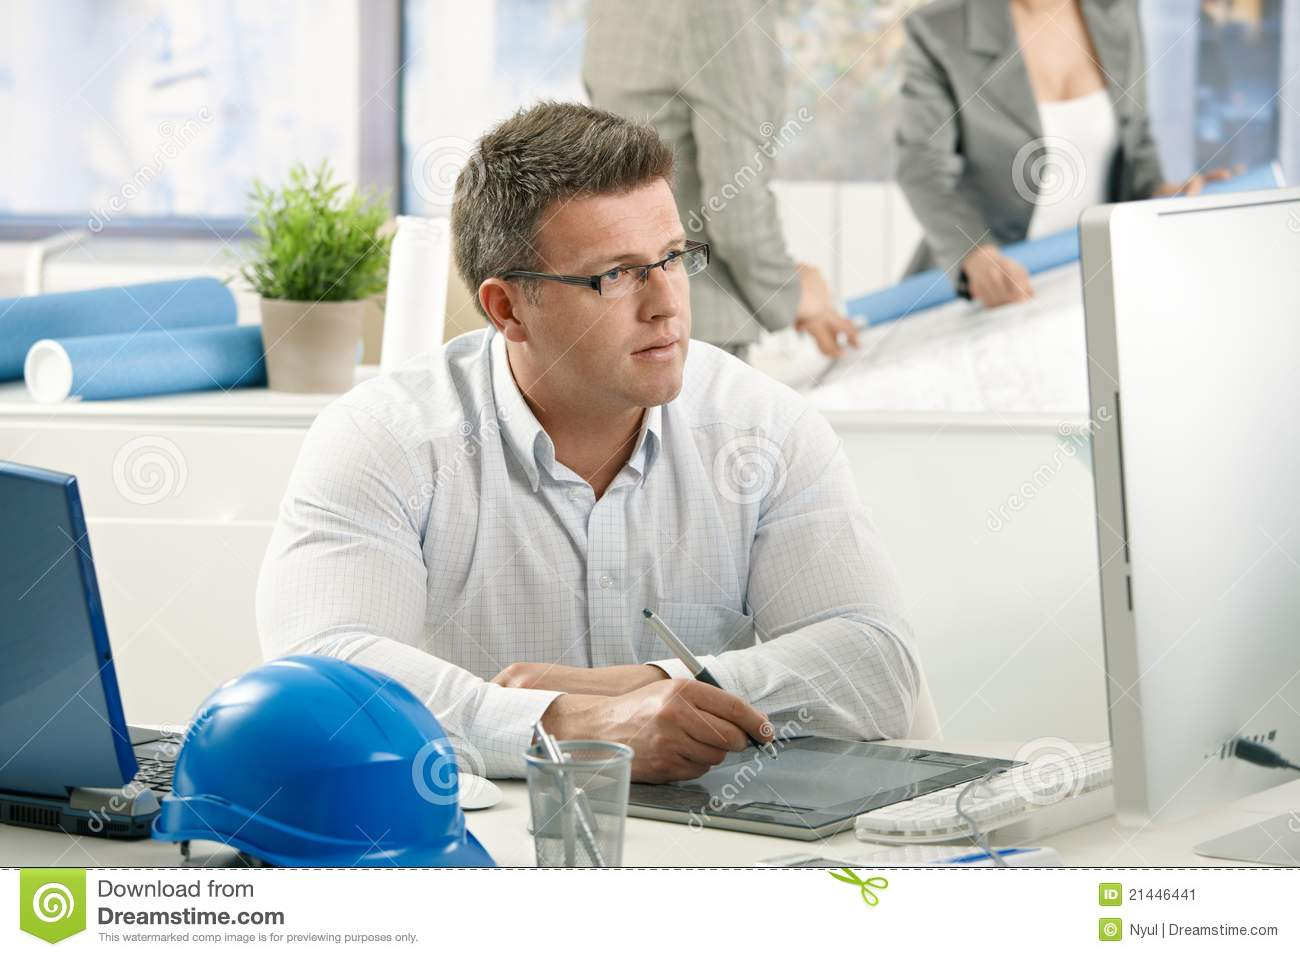 Concentrating Architect At Work Stock Image - Image: 21446441